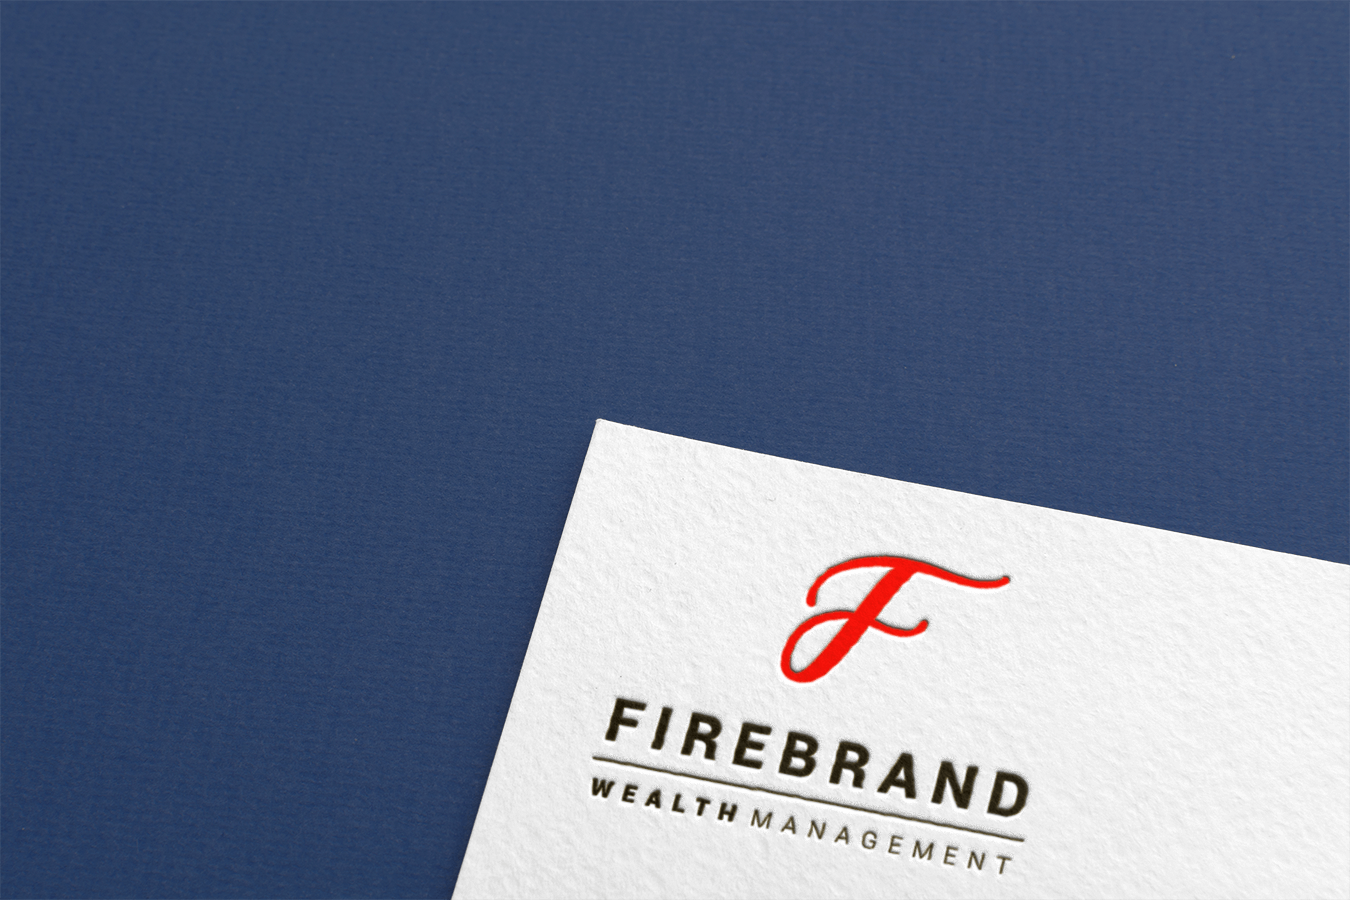 Portfolio - logo - Firebrand Wealth Management.png